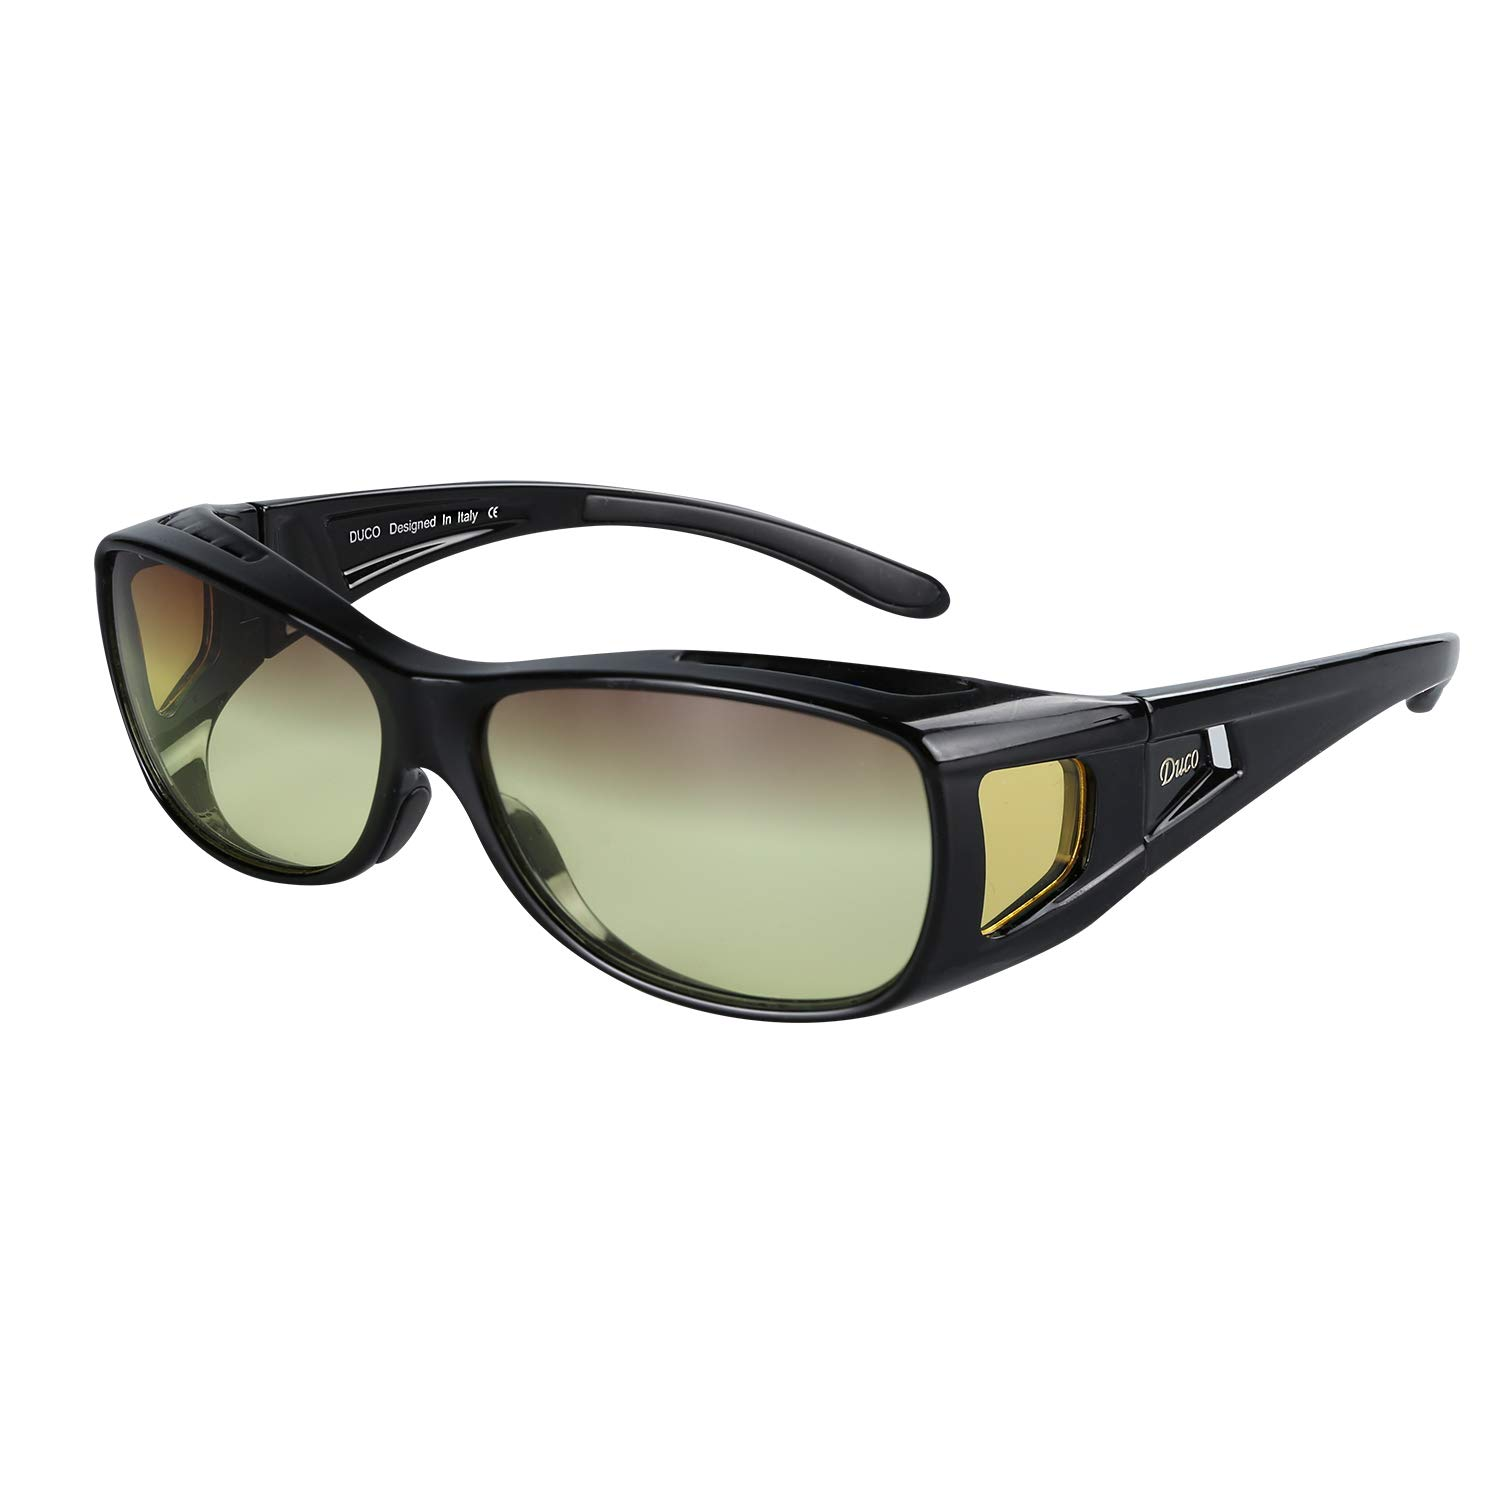 Duco Night Driving Over Glasses Wrap Around Be Worn Over Prescription Eyewear Night Vision 8952Y by DUCO